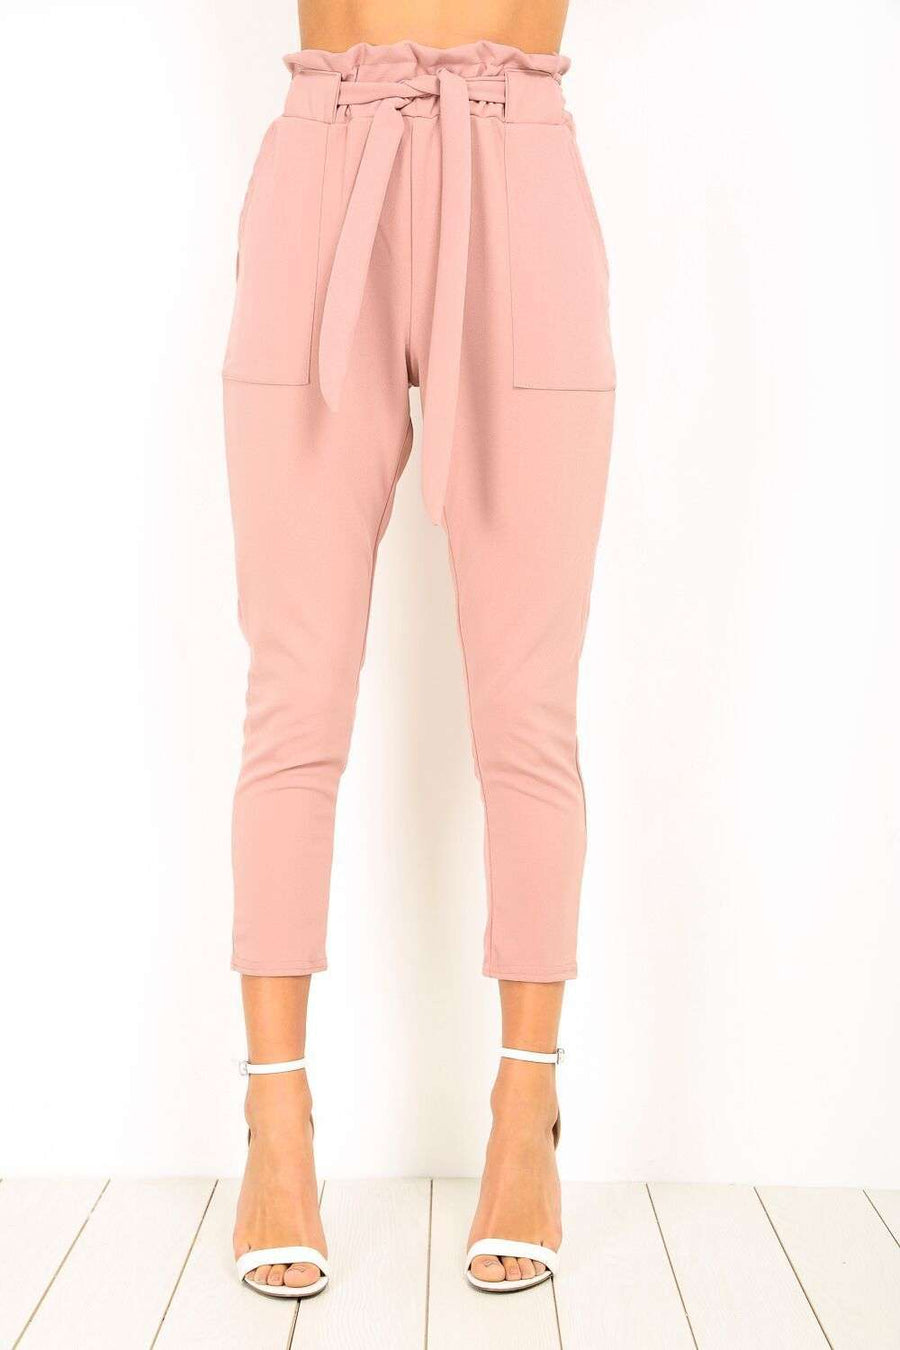 Elljay Paper Bag Trousers - bejealous-com